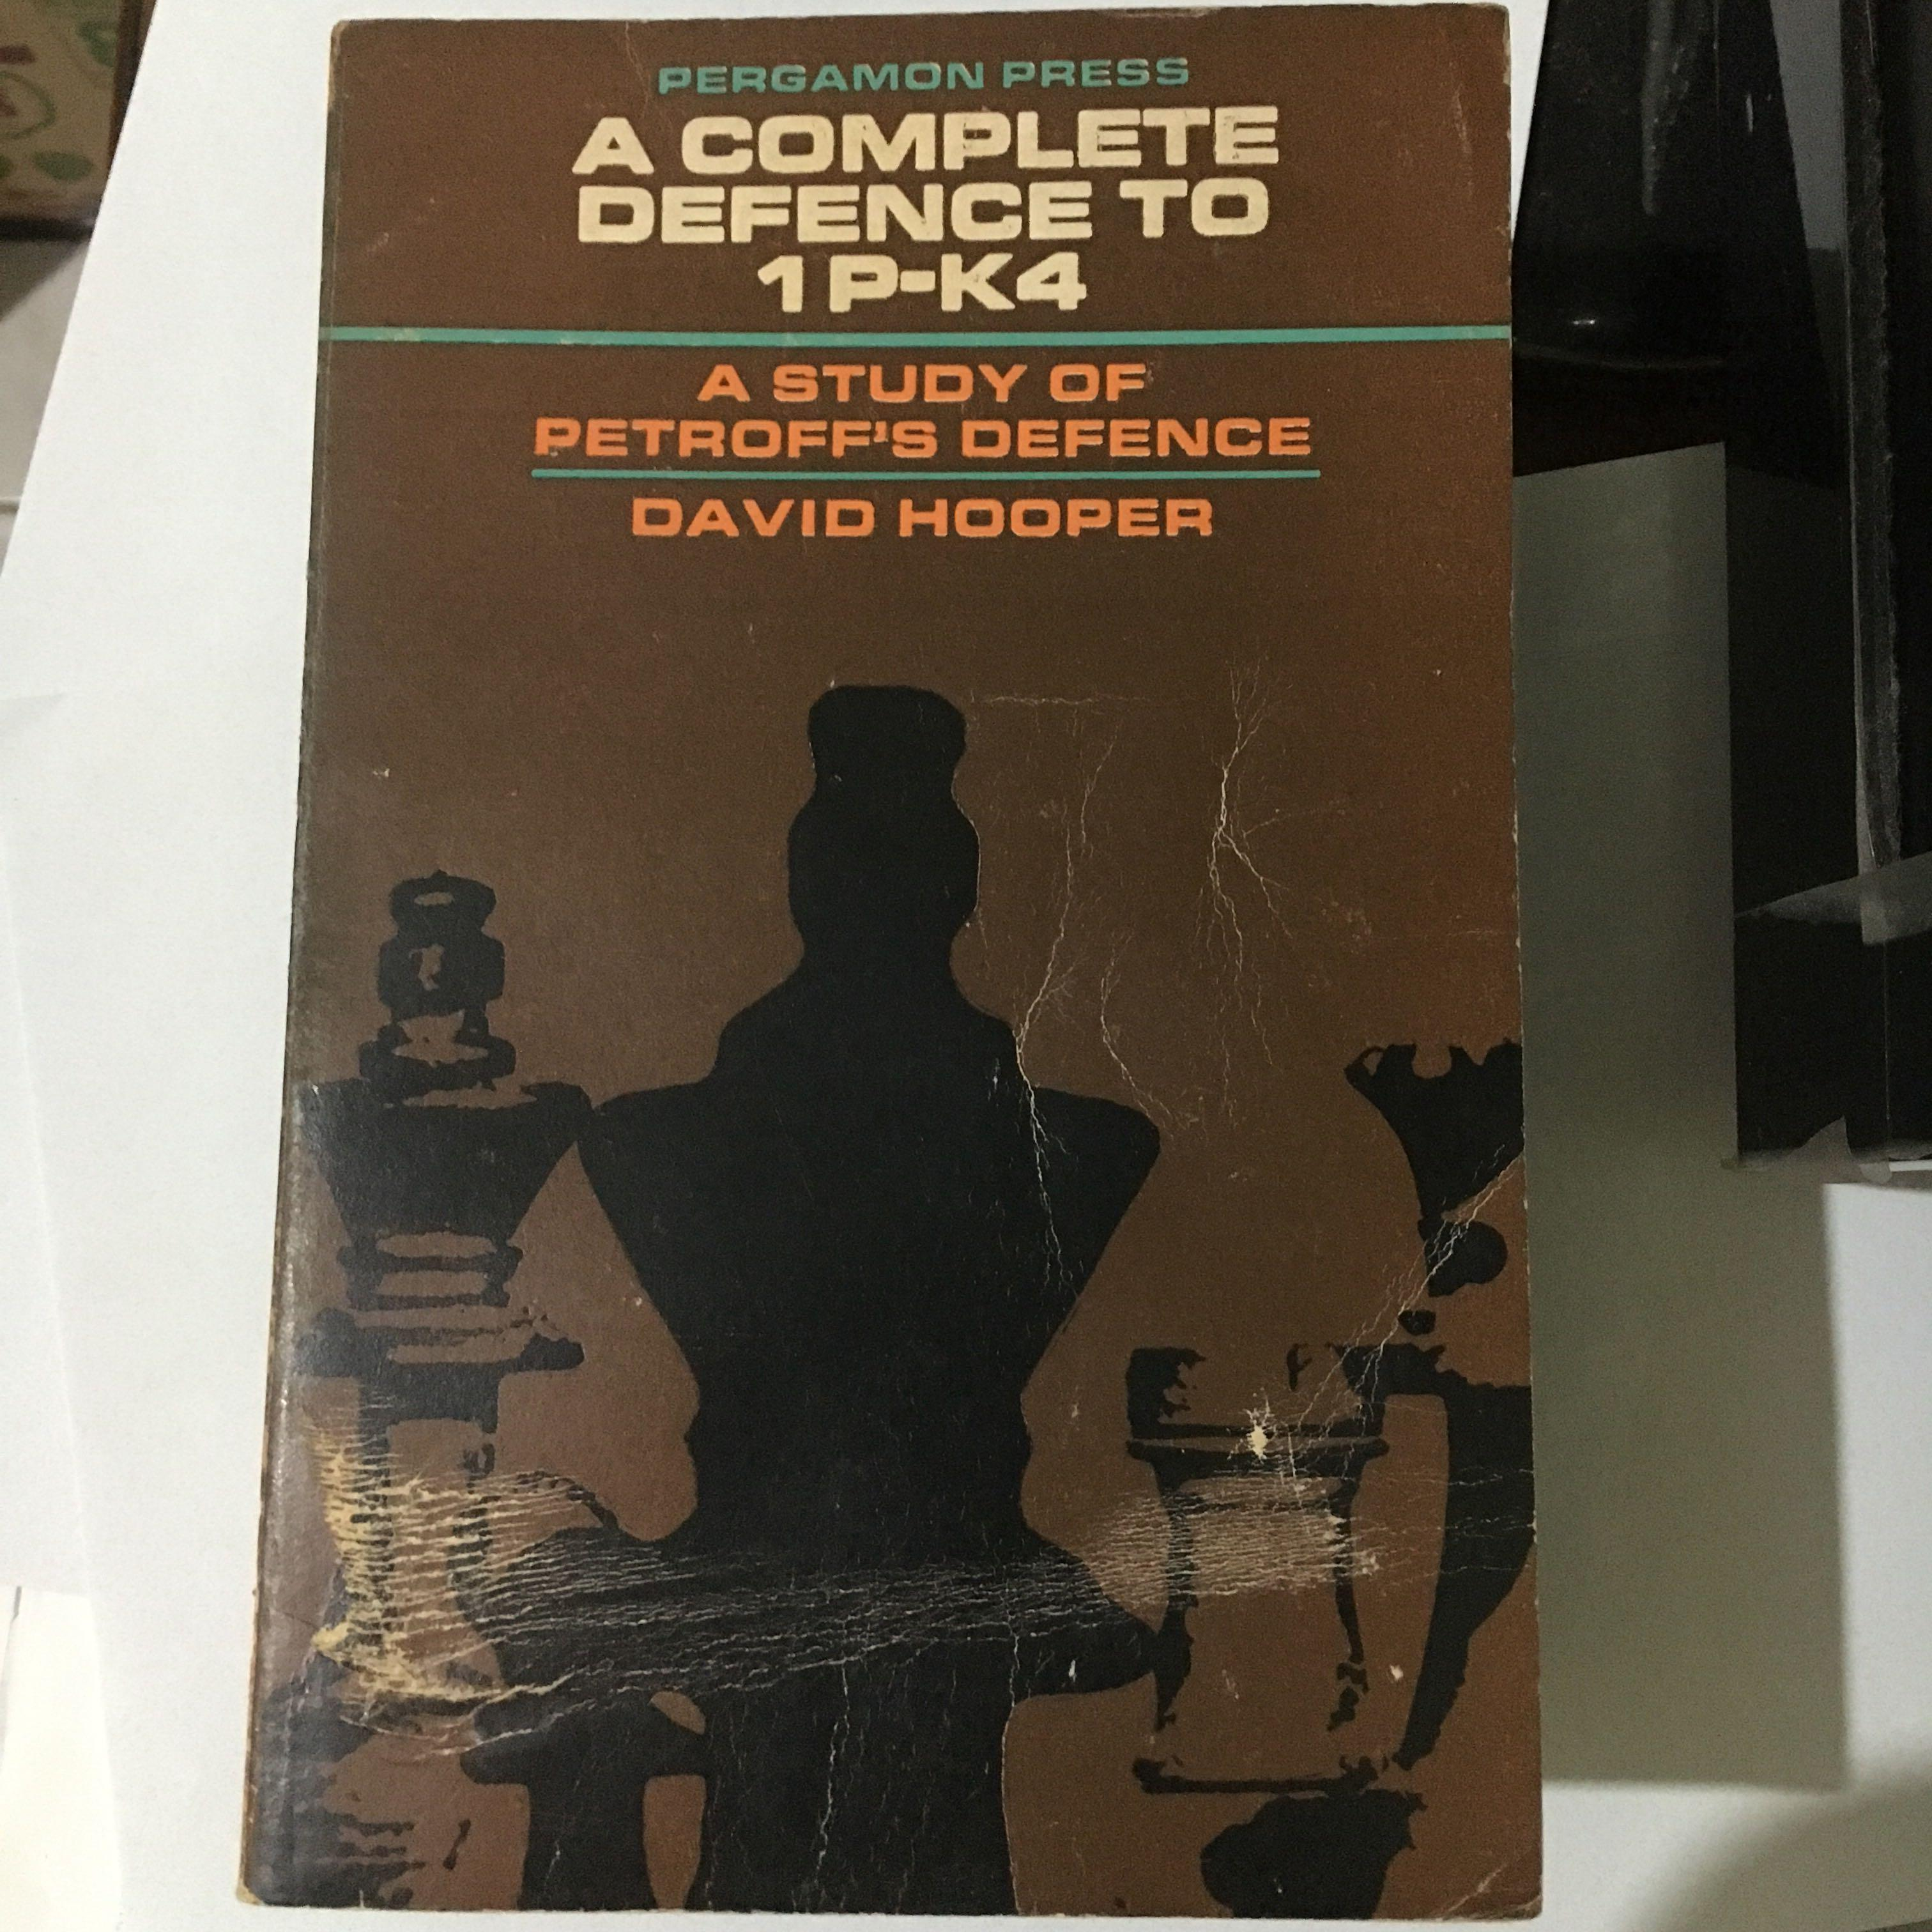 Chess book - A complete defence to 1P-K4, A study of petroff's defense by david hooper